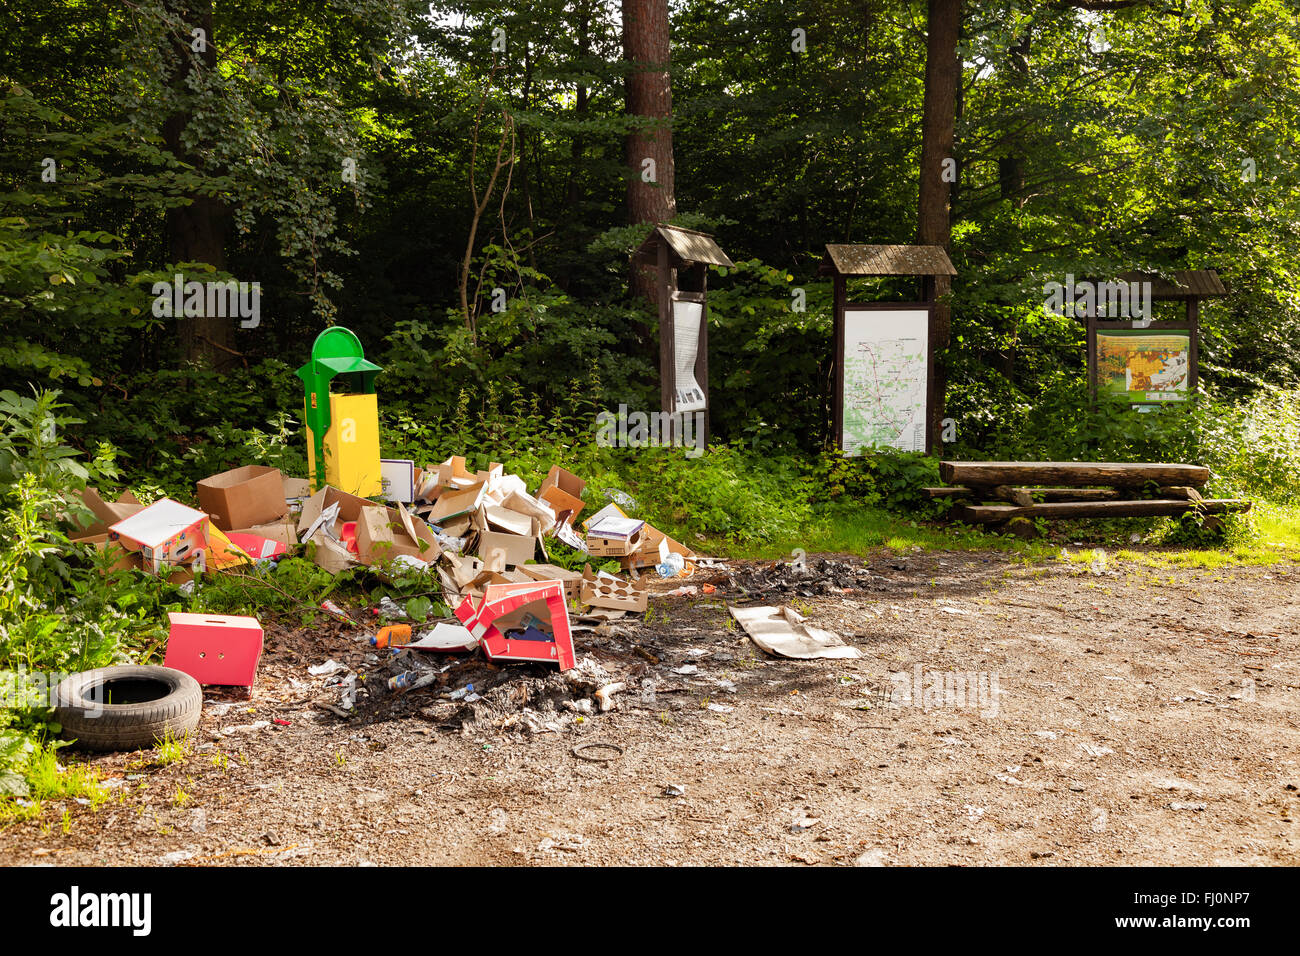 Illegal Dump In Forest - Environment Pollution. - Stock Photo